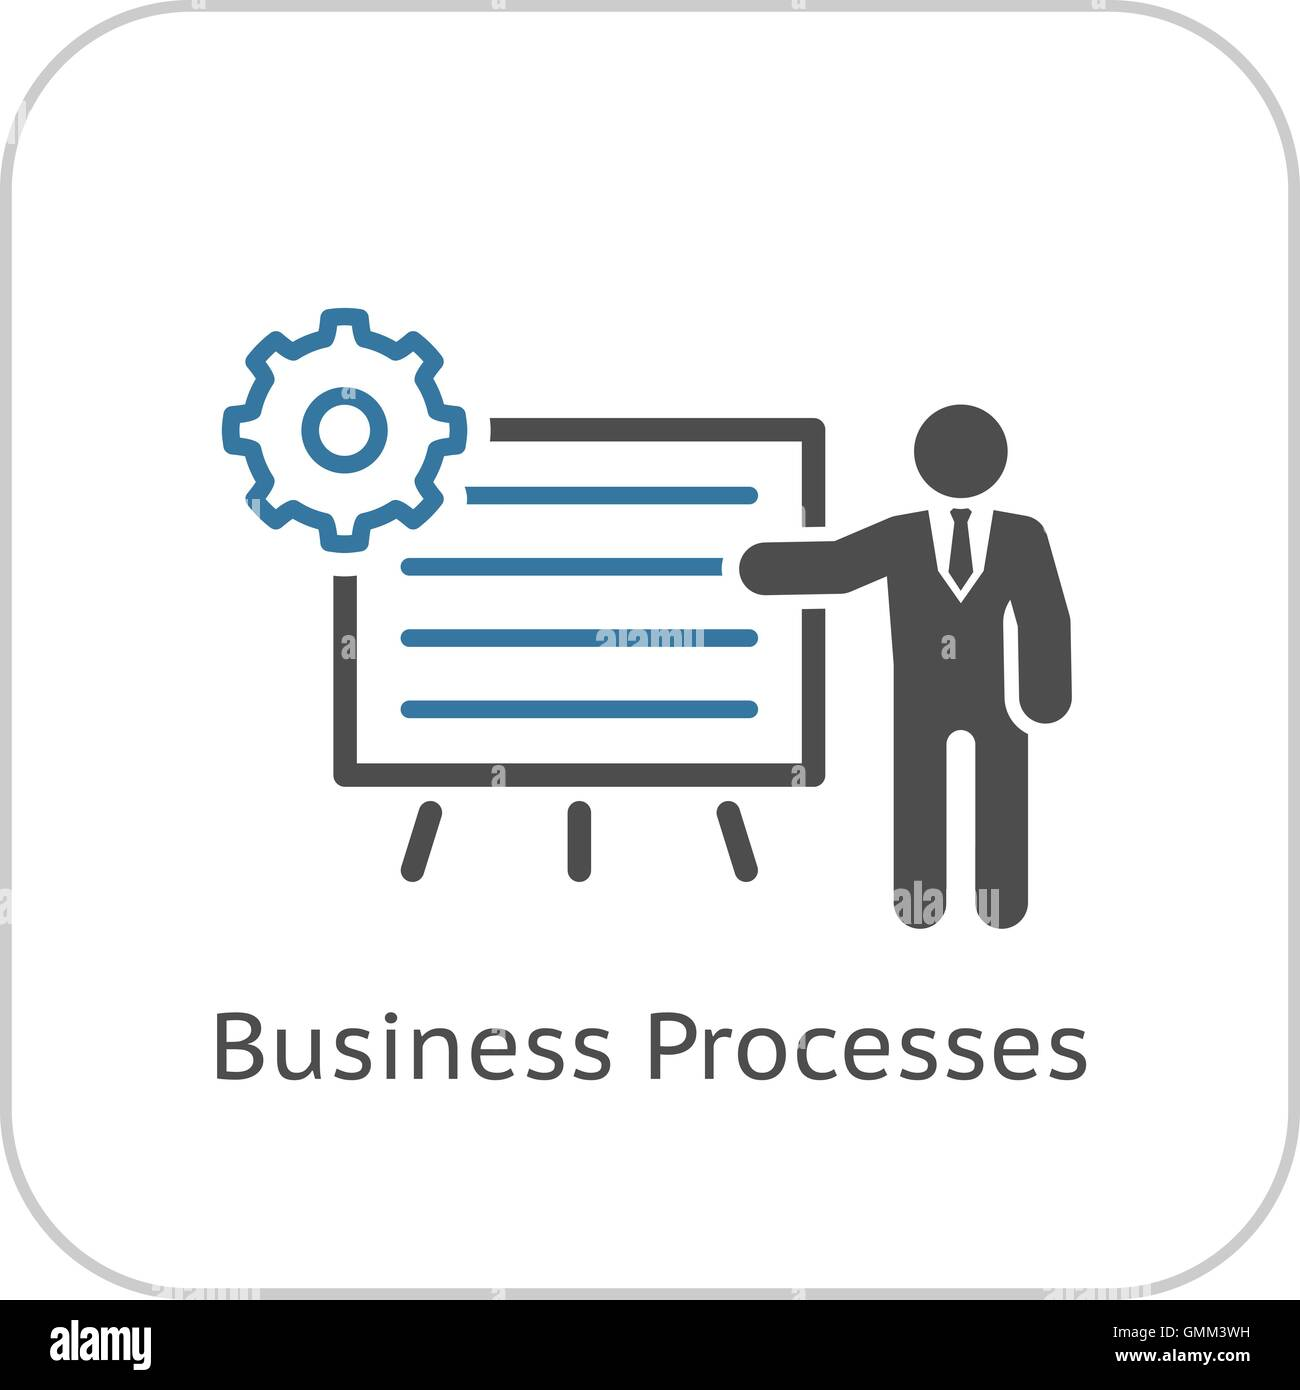 Business Processes Icon. Flat Design. - Stock Image